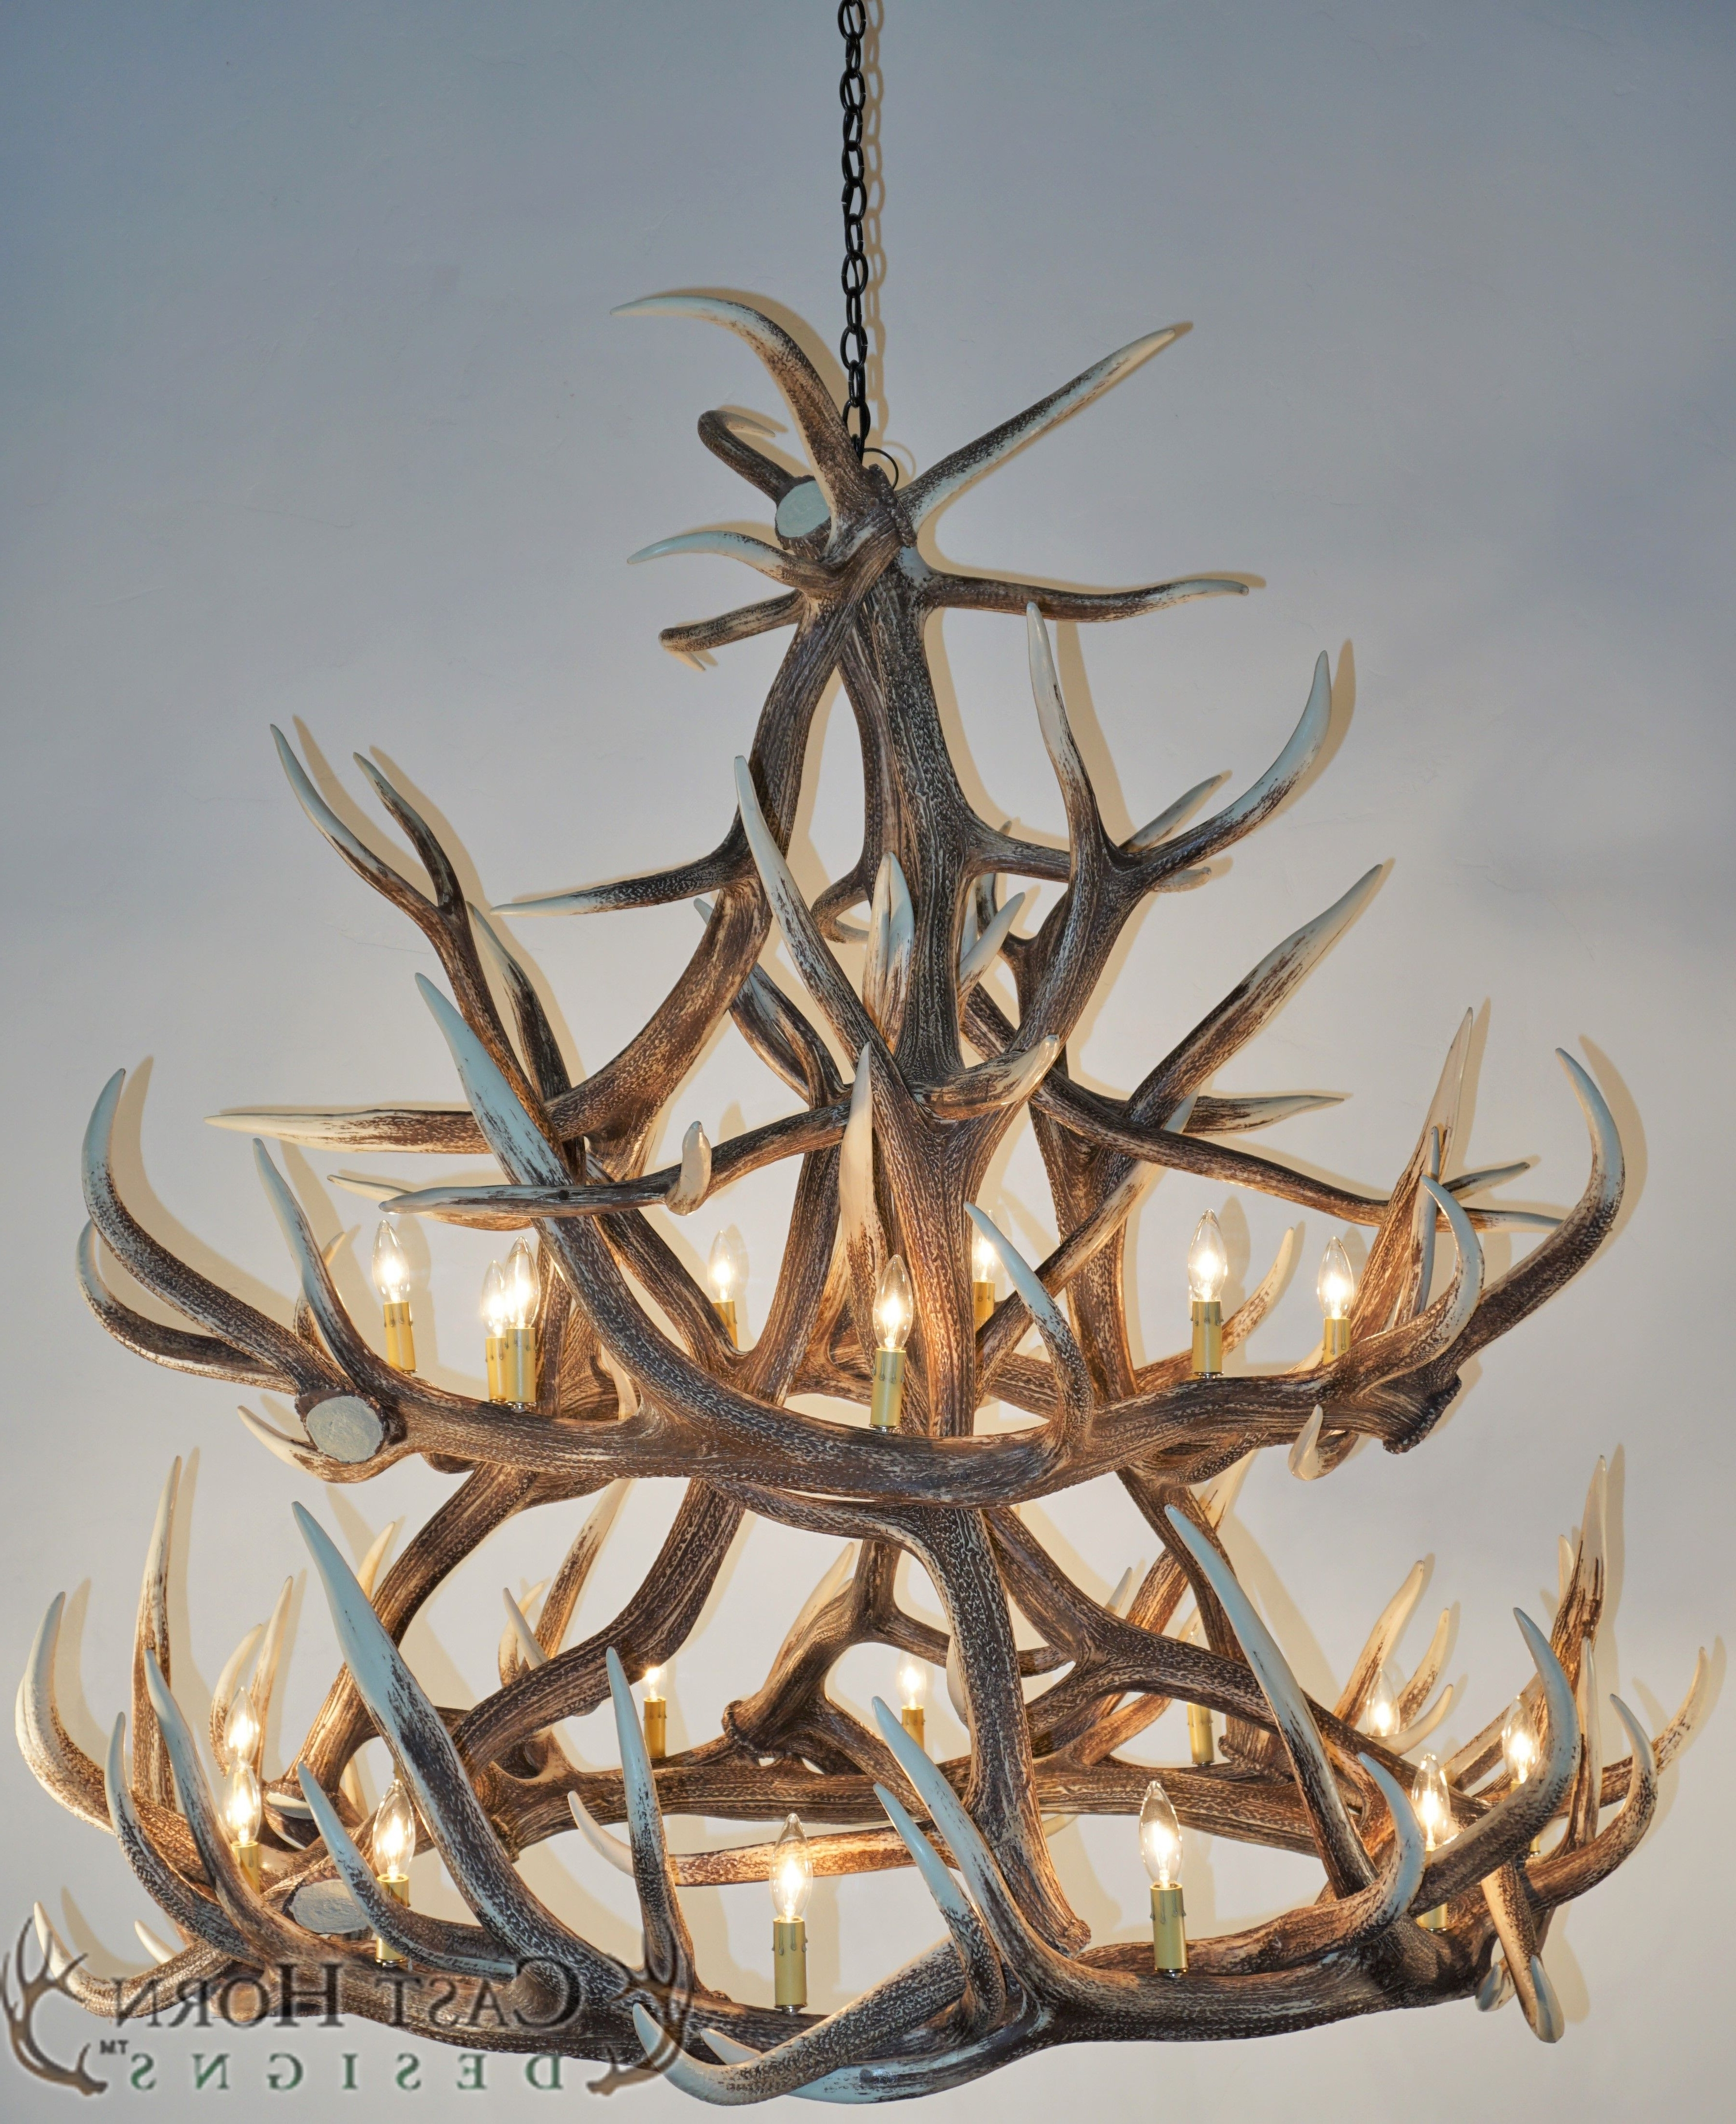 White Antler Chandelier In Most Up To Date Chandeliers : White Antler Chandelier Inspirational Lighting Elk (View 10 of 15)